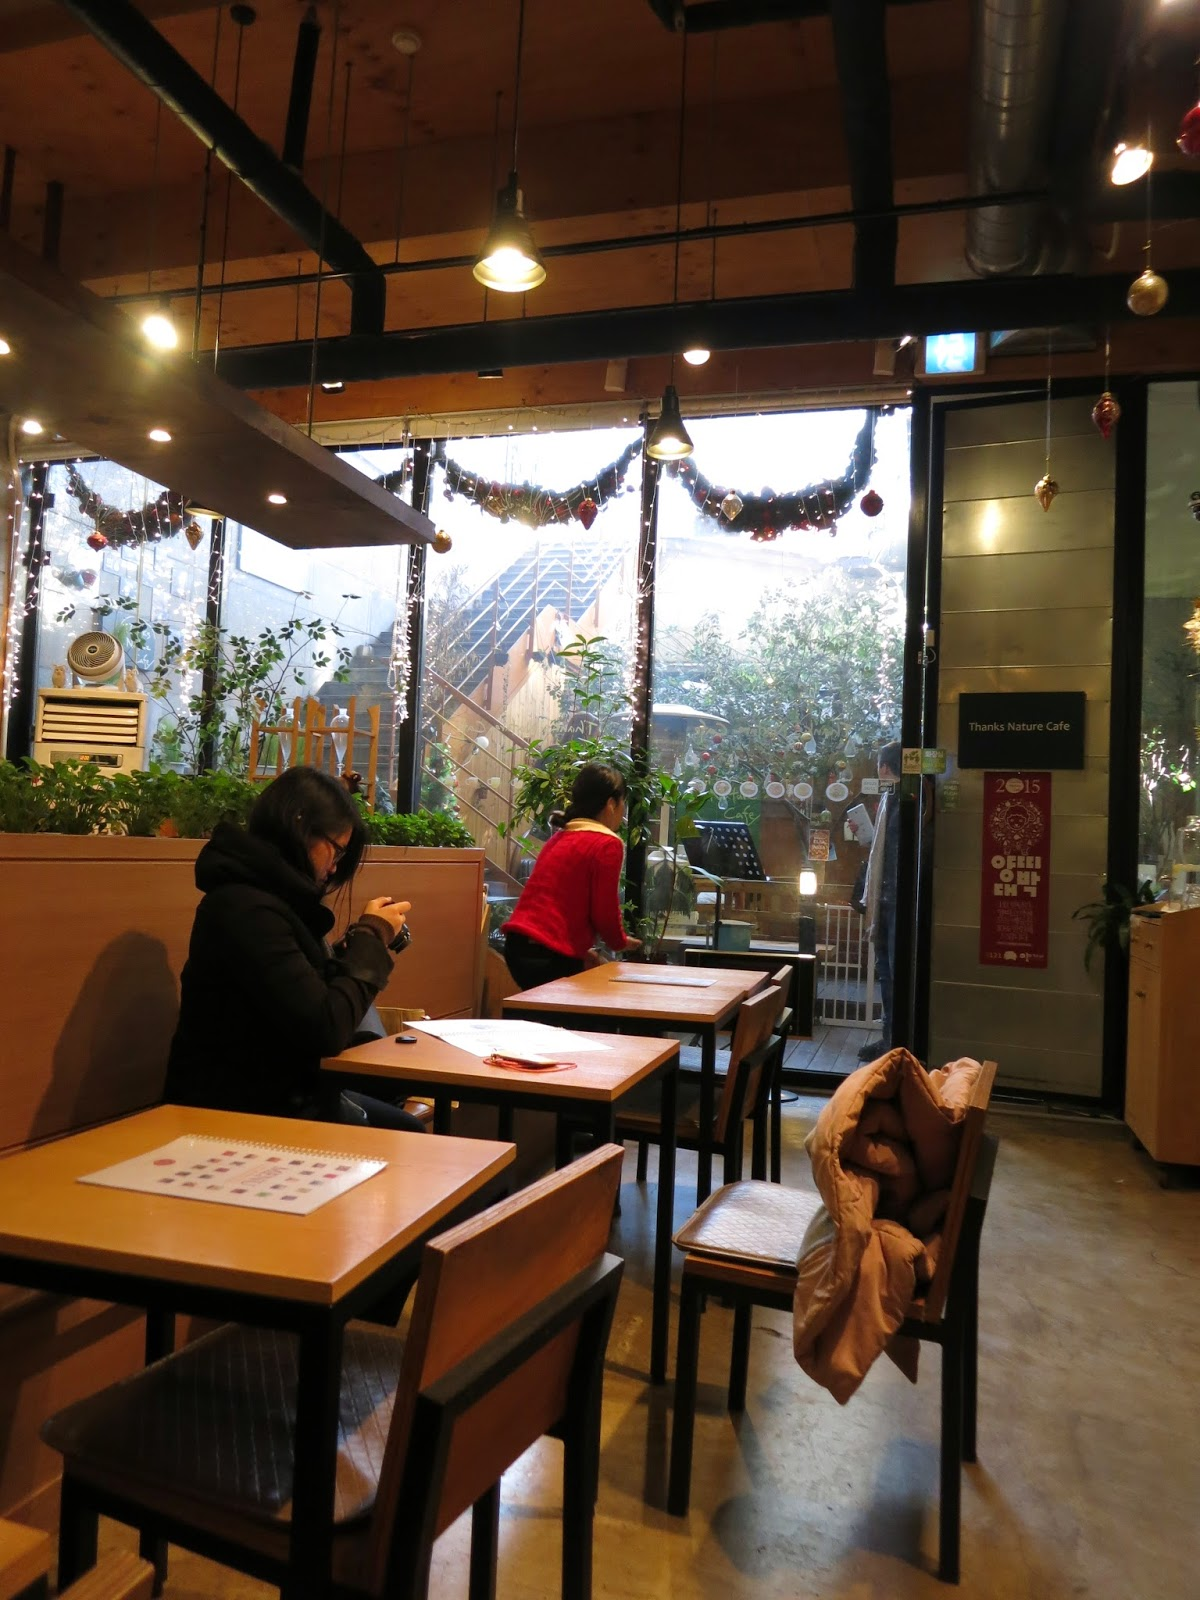 Thanks Nature Cafe (Sheep Cafe) - Hongdae, Seoul